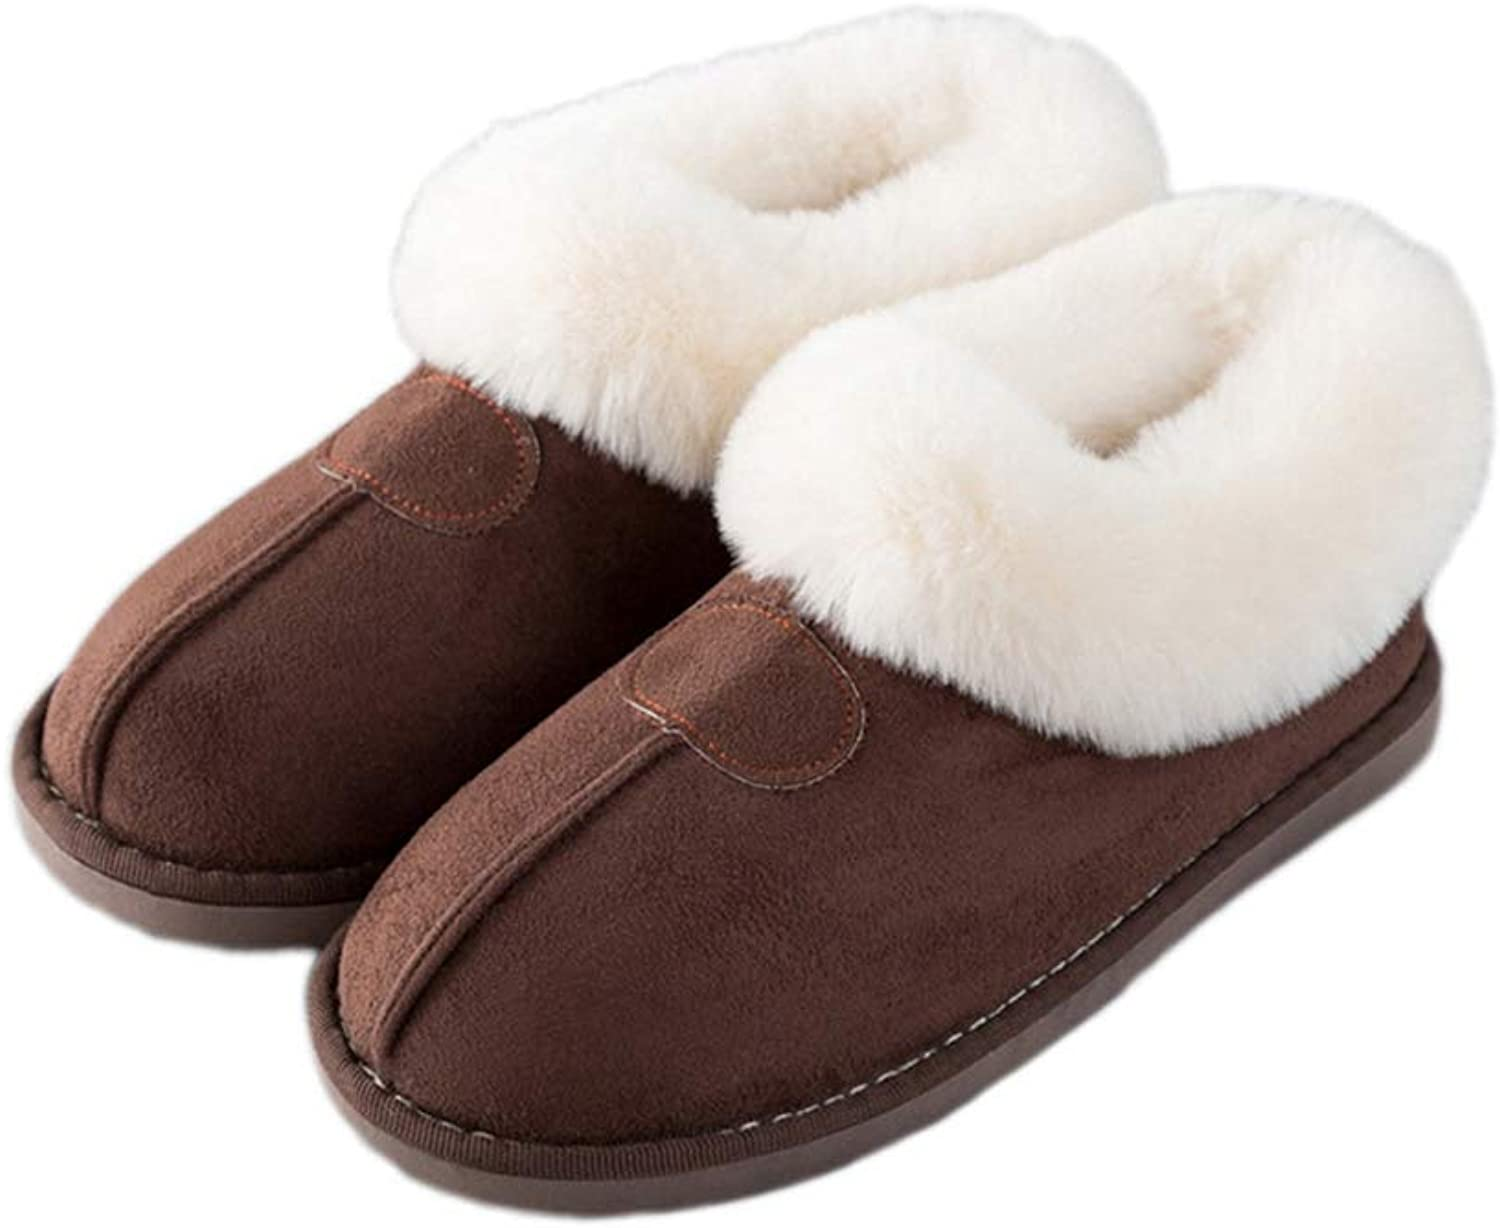 ASO-SLING Womens Home Slippers Comfort Cotton Plush Memory Foam Breathable Anti-Slip Winter Indoor Warm House shoes